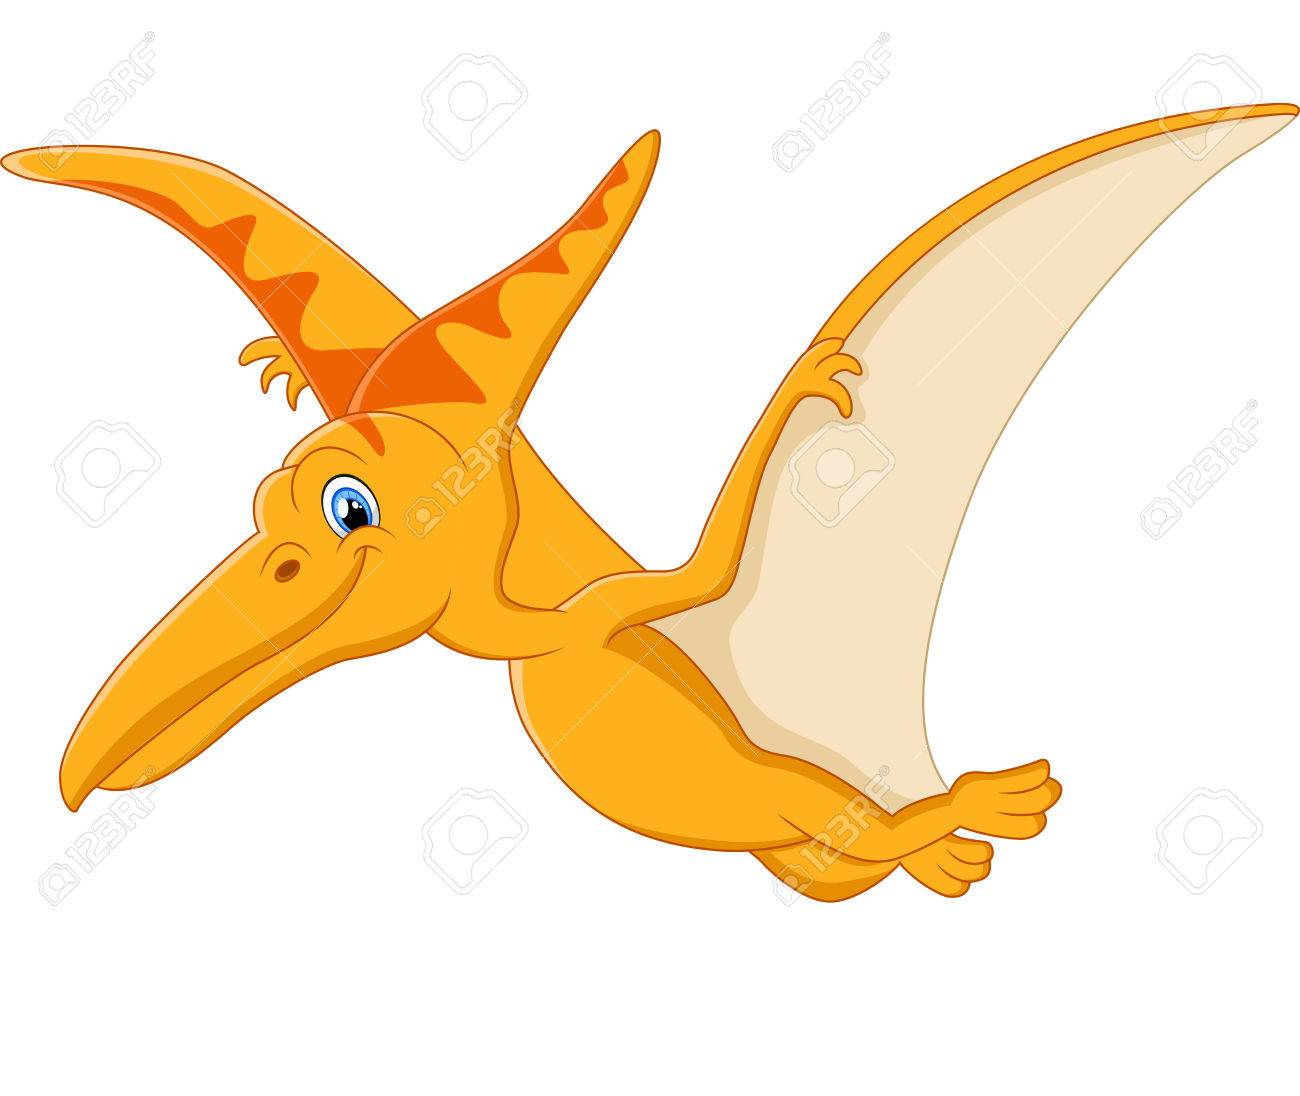 cute pterodactyl cartoon royalty free cliparts vectors and stock rh 123rf com Quetzalcoatlus and Pterodactyl Clip Art pterodactyl dinosaur clipart